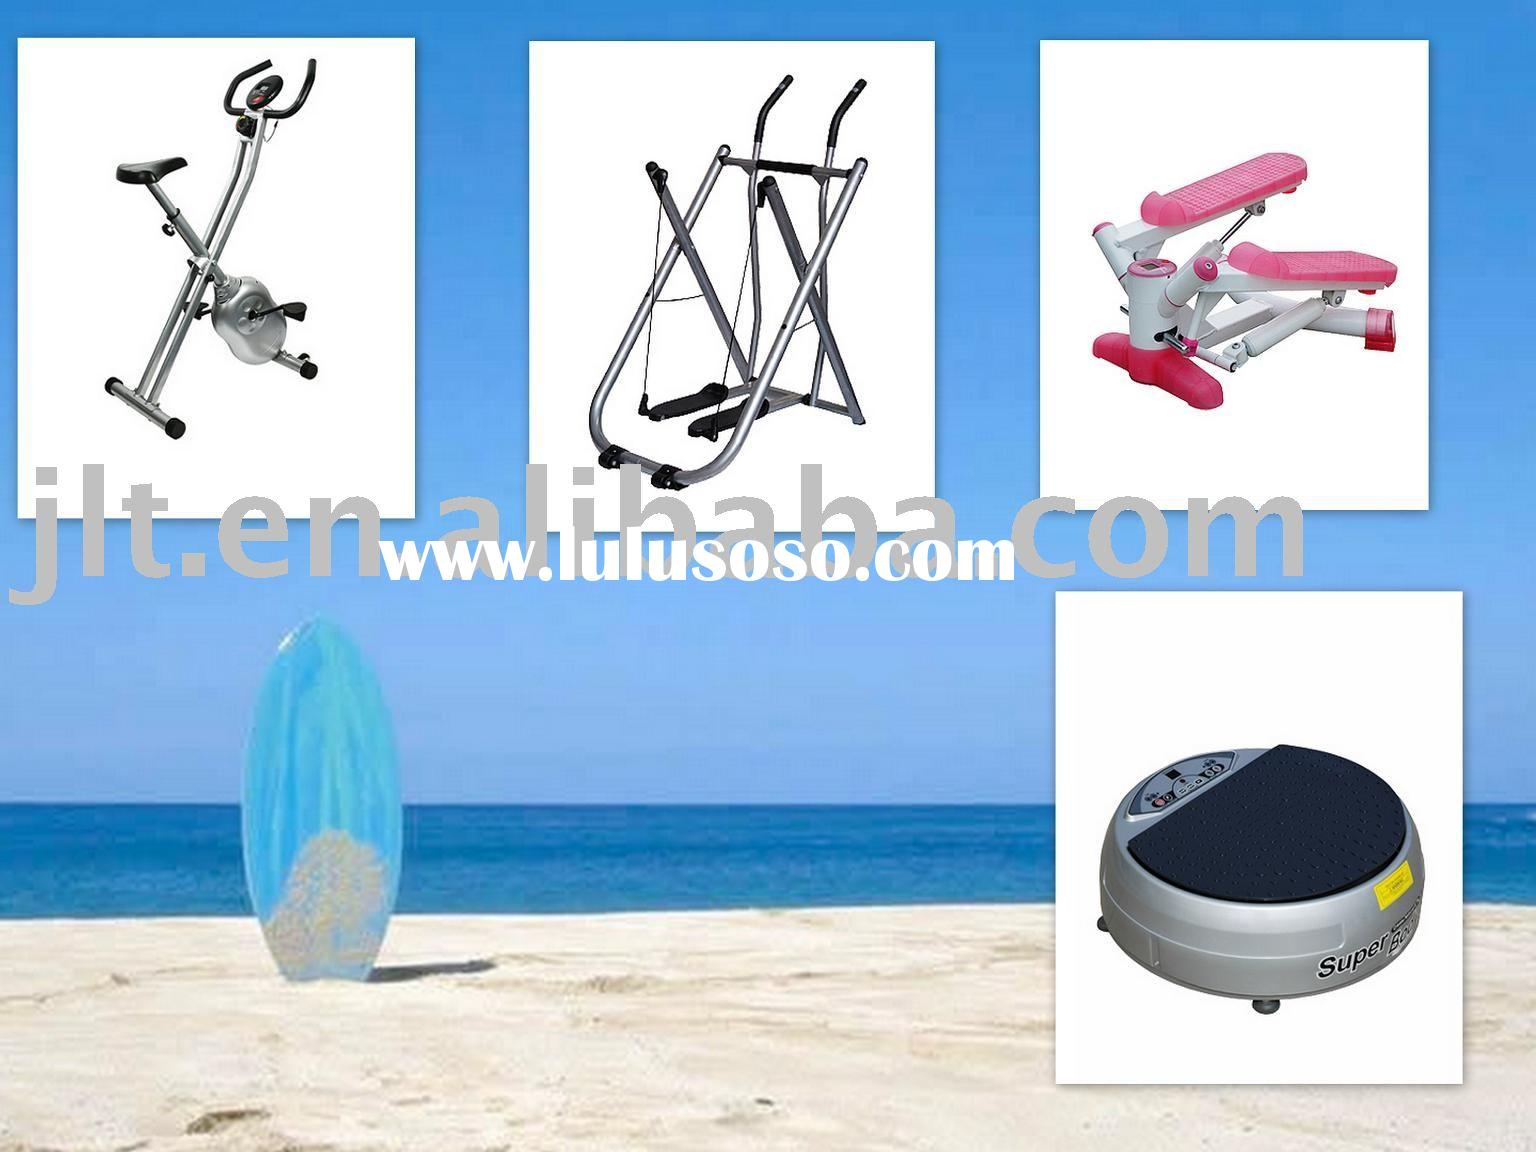 mini Power Plate/ vibration plate, Small Fitness Machine, Vibro Plate,fit massage,Body Shaper, Body